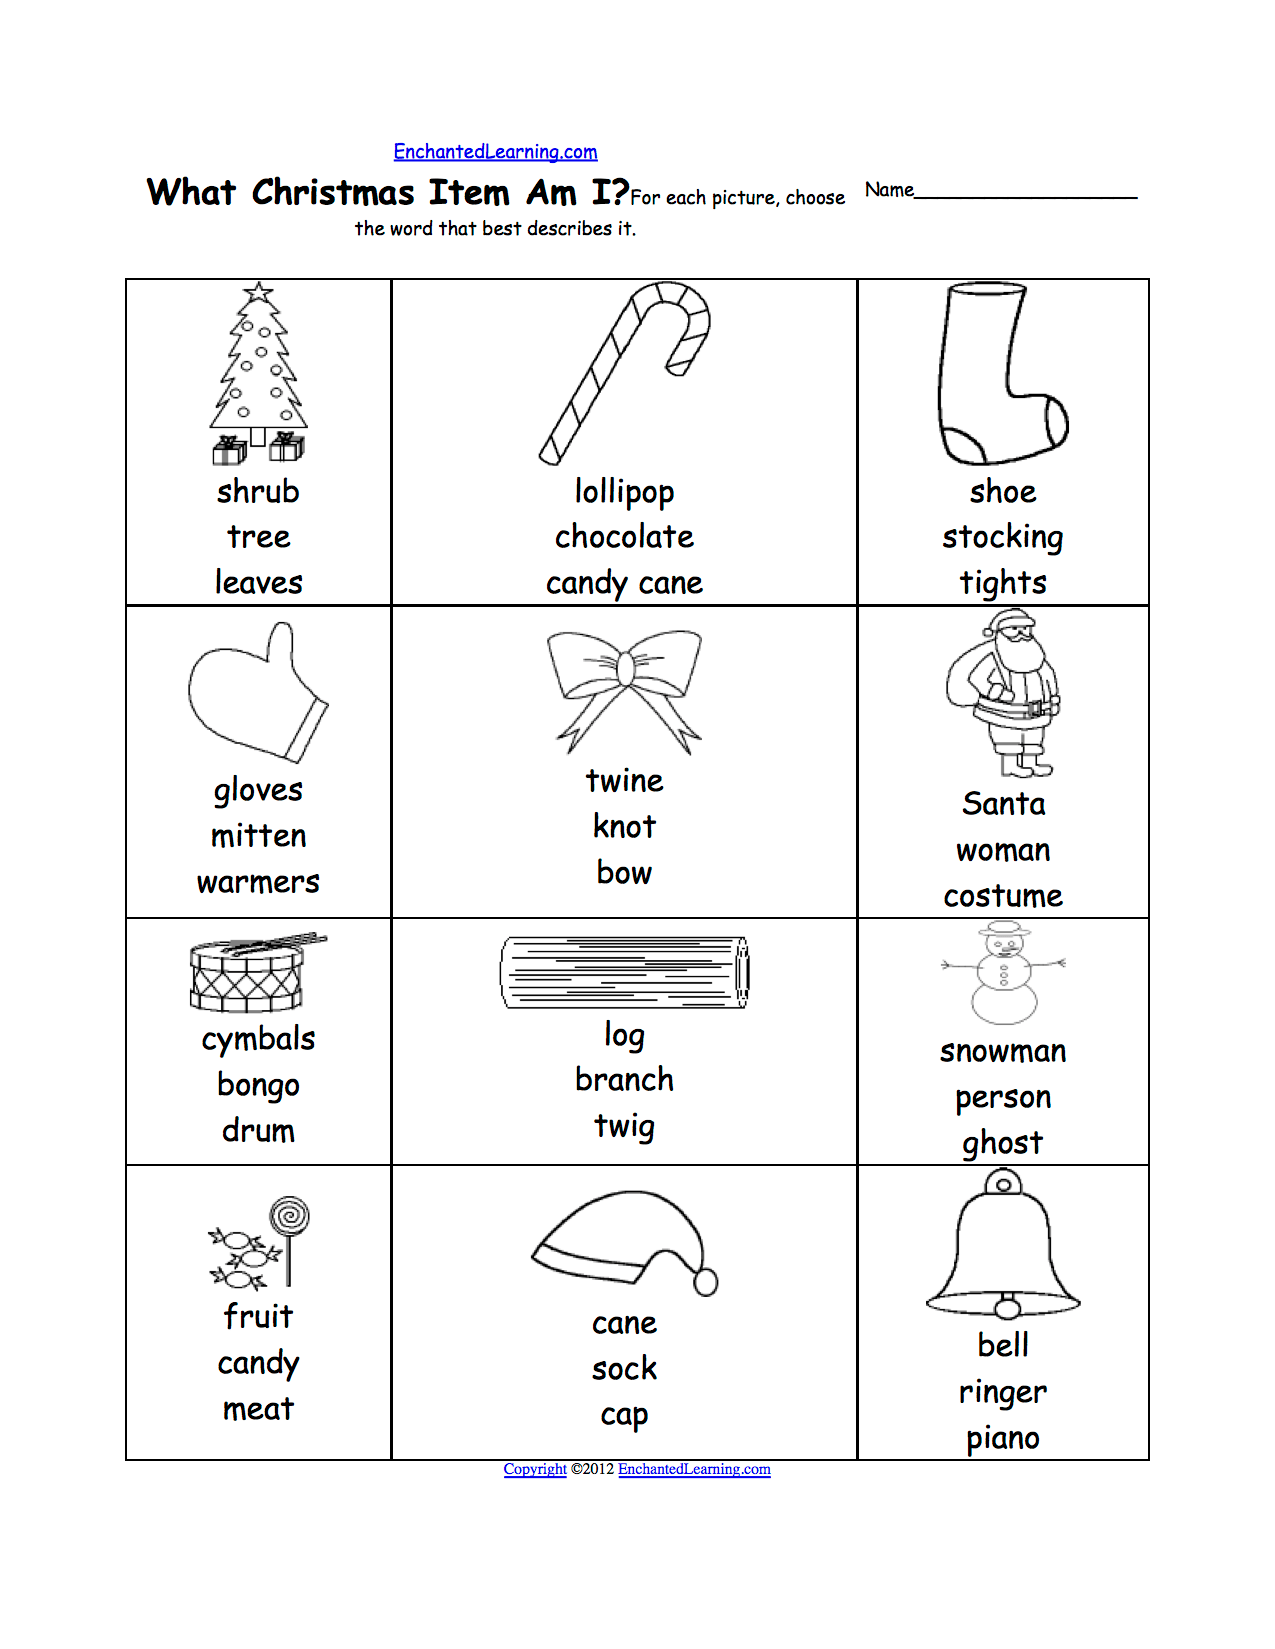 Sheet Printable Images Gallery Category Page 17